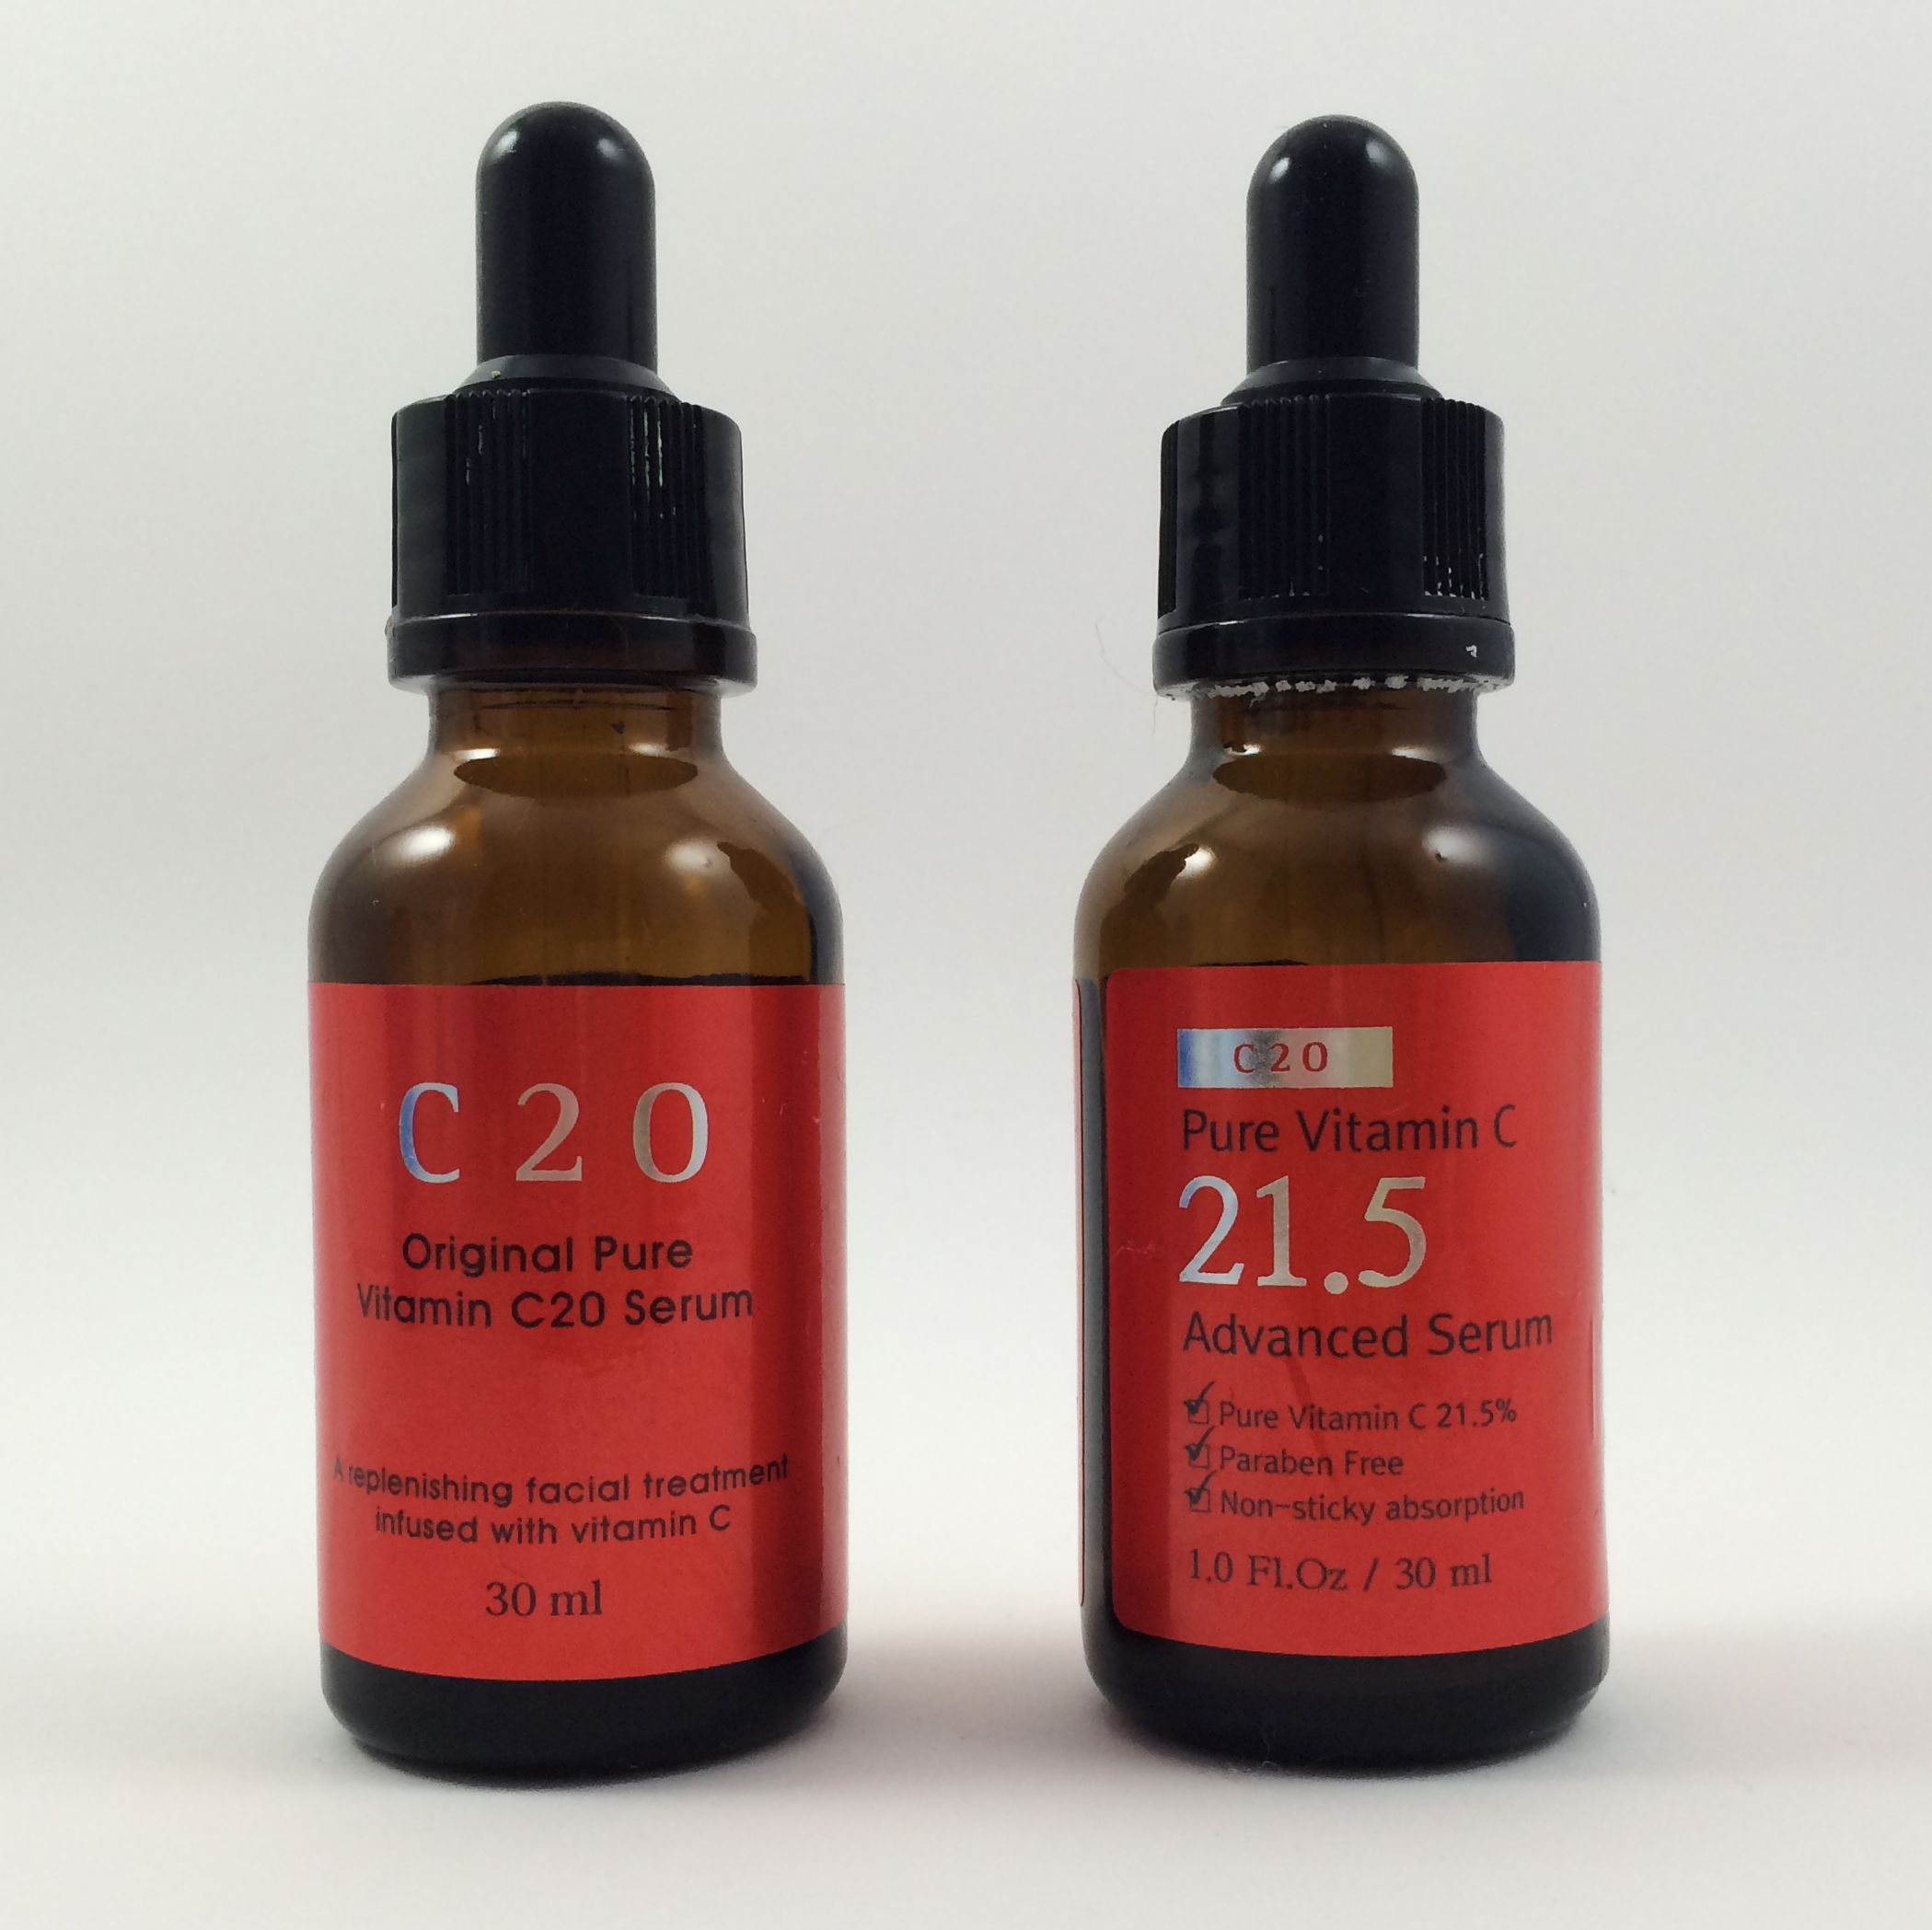 In this review I compare Korean vitamin c serums C20 and